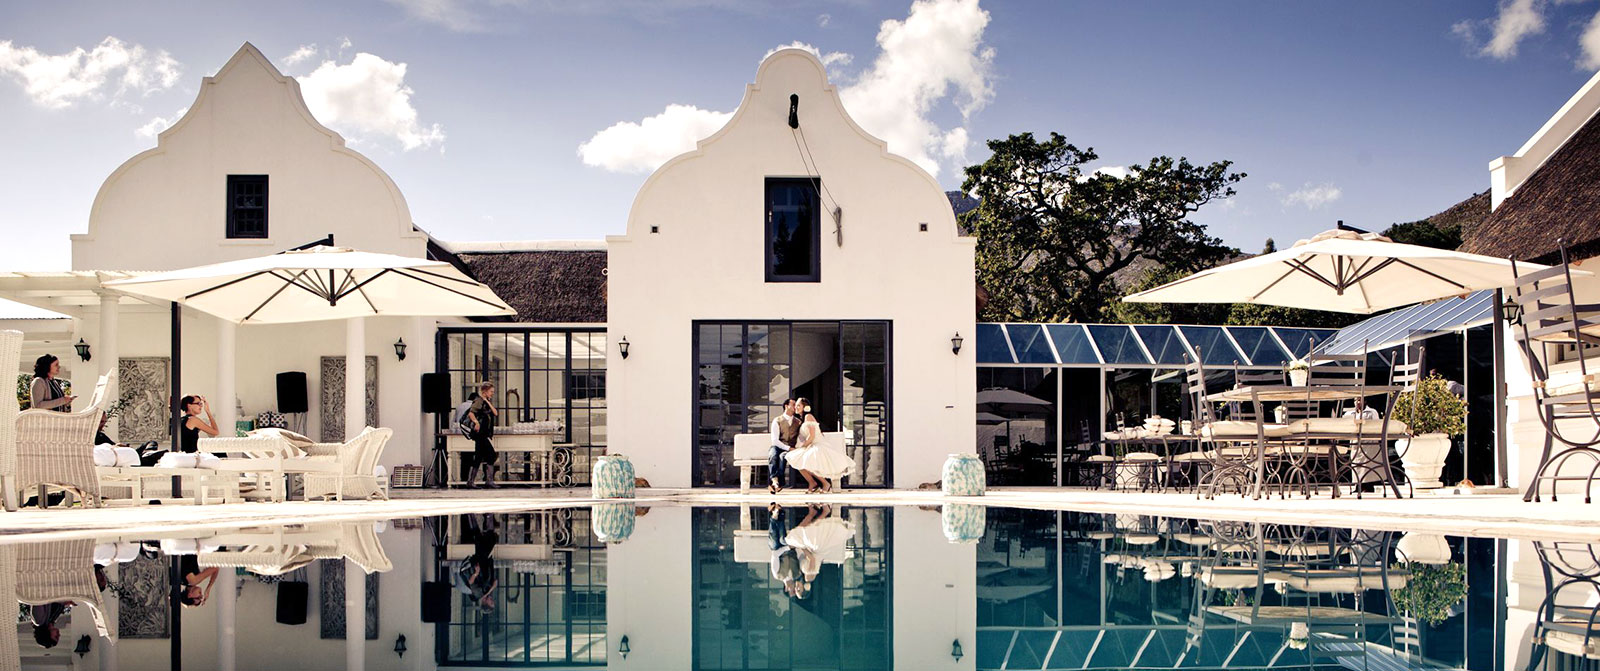 South Africa Garden Route Package - Grand Dédale Luxury Hotel Cape Winelands